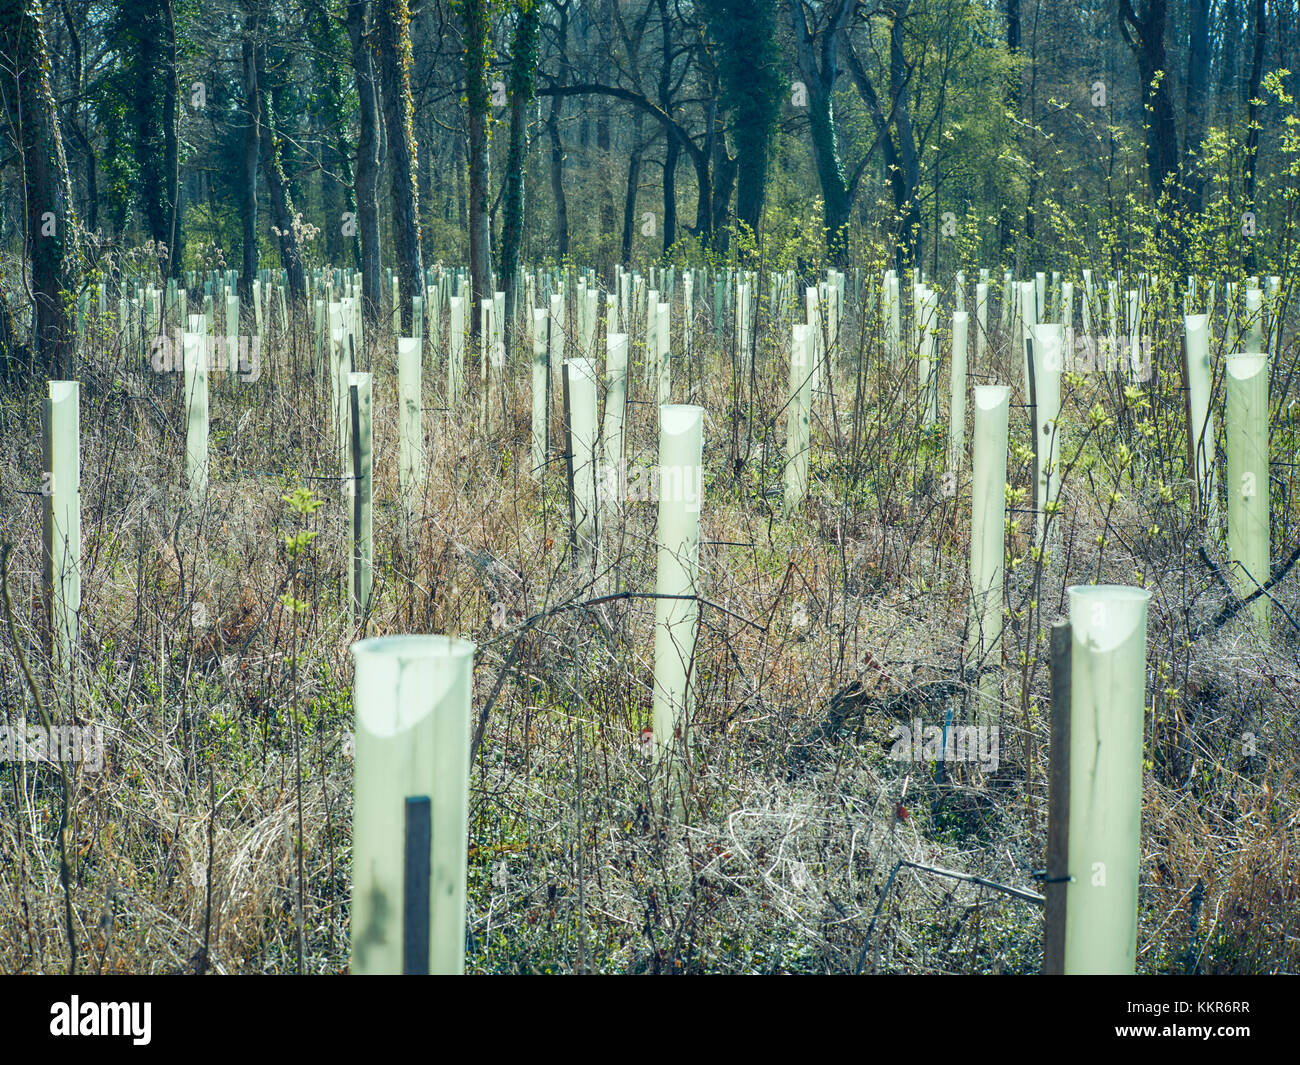 Many tree shelters for young trees, in a forest, with sun - Stock Image